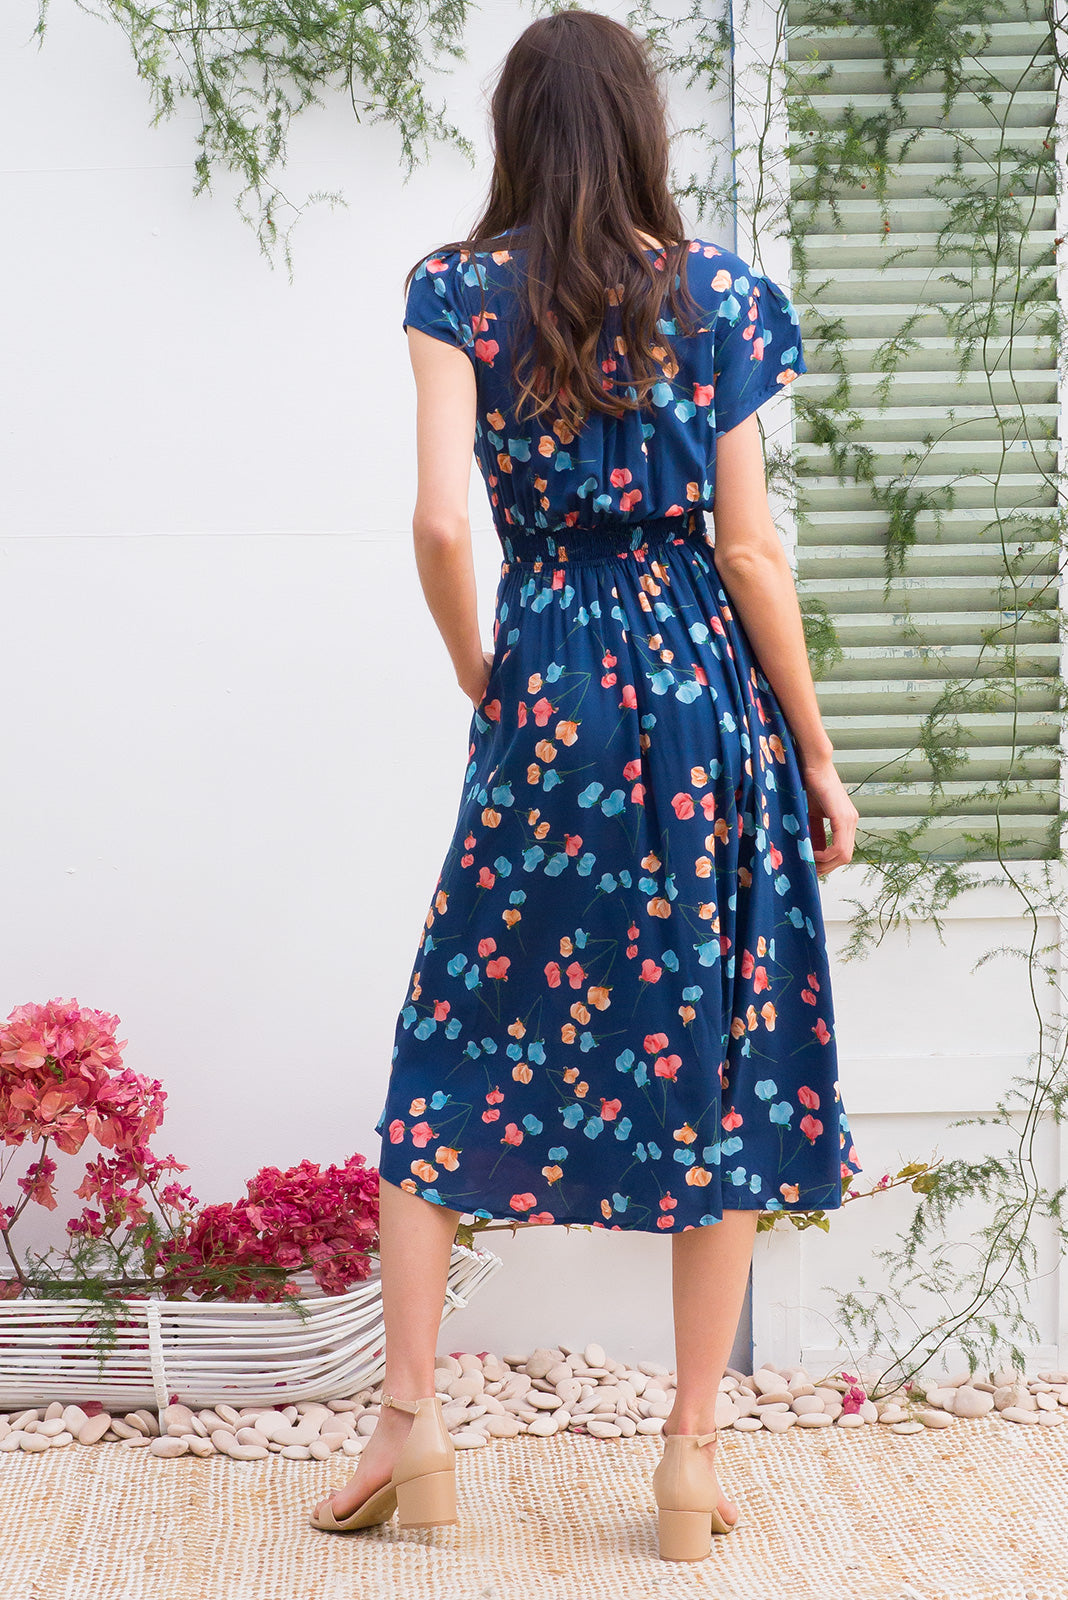 Lizzie Blue Poppies Midi dress features a vintage inspired fitted basque waist and elasticated waist with a cap sleeve and deep v neck the fabric is a soft woven rayon in a soft navy poppy floral print